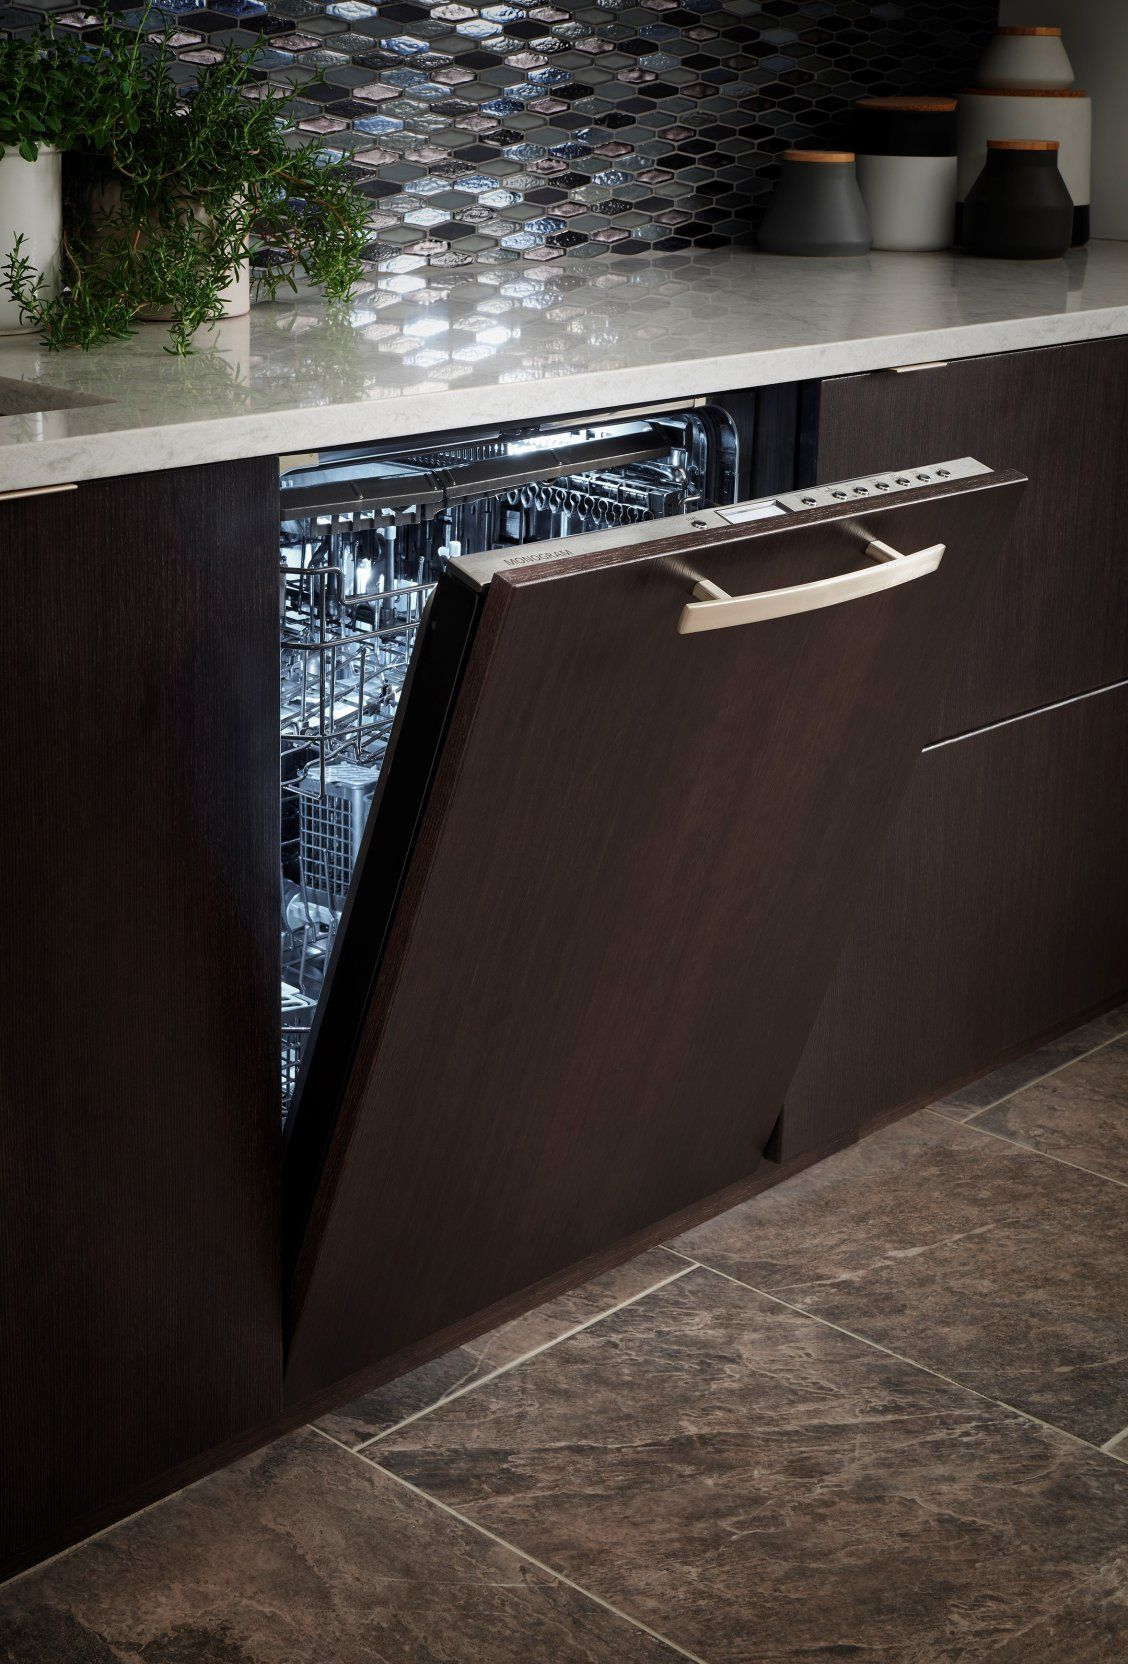 Monogram Panel Ready Dishwashers Blend Discreetly With The Rest Of Your Cabinetry For A Look Of Eleg Monogram Appliances Ge Monogram Appliances Hide Appliances